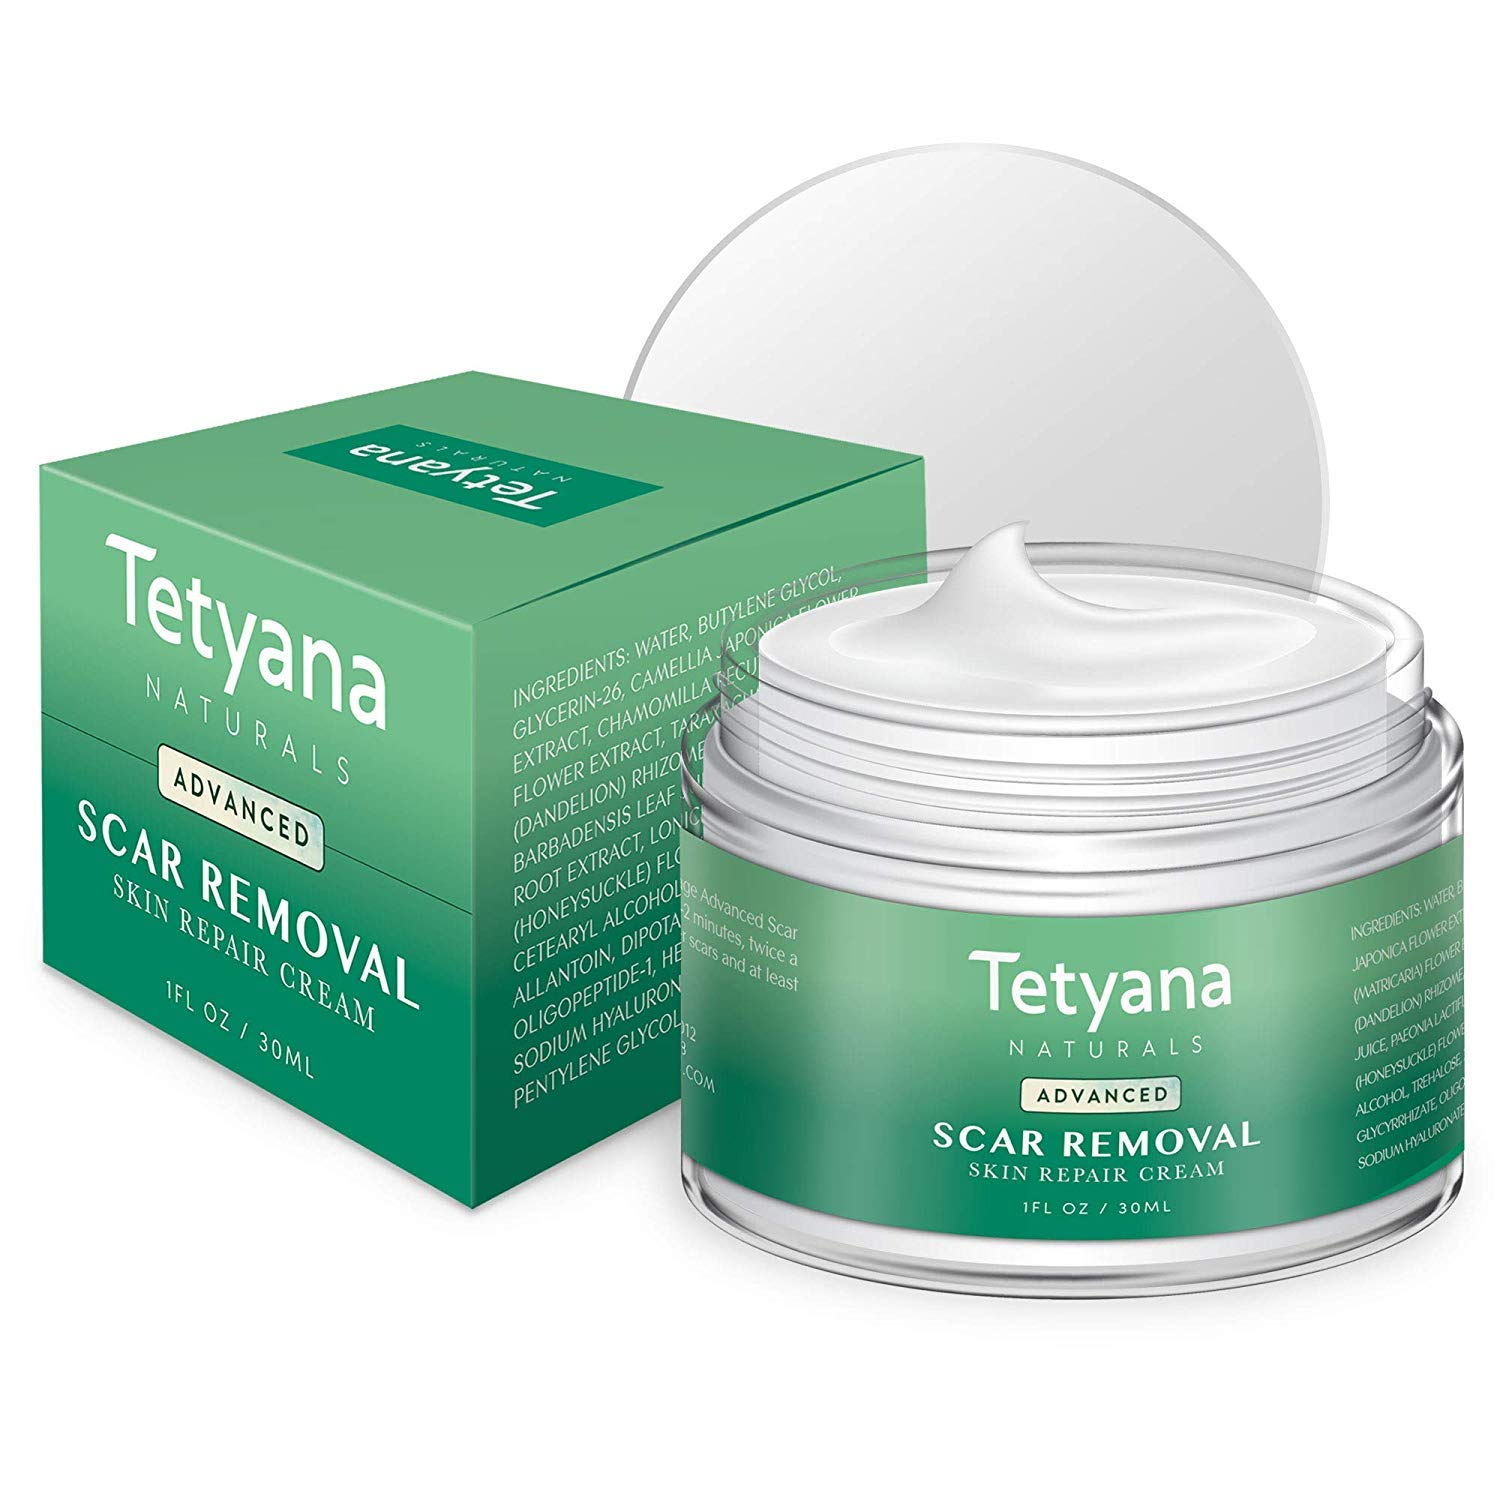 Tetyana naturals Scar Removal with Cream Natural Herbal Extracts Formula for Face & Body Old & New Scars from Cuts Stretch Marks, C-Sections & Surgeries (30ml 1pack) by Neutrogena (Image #3)